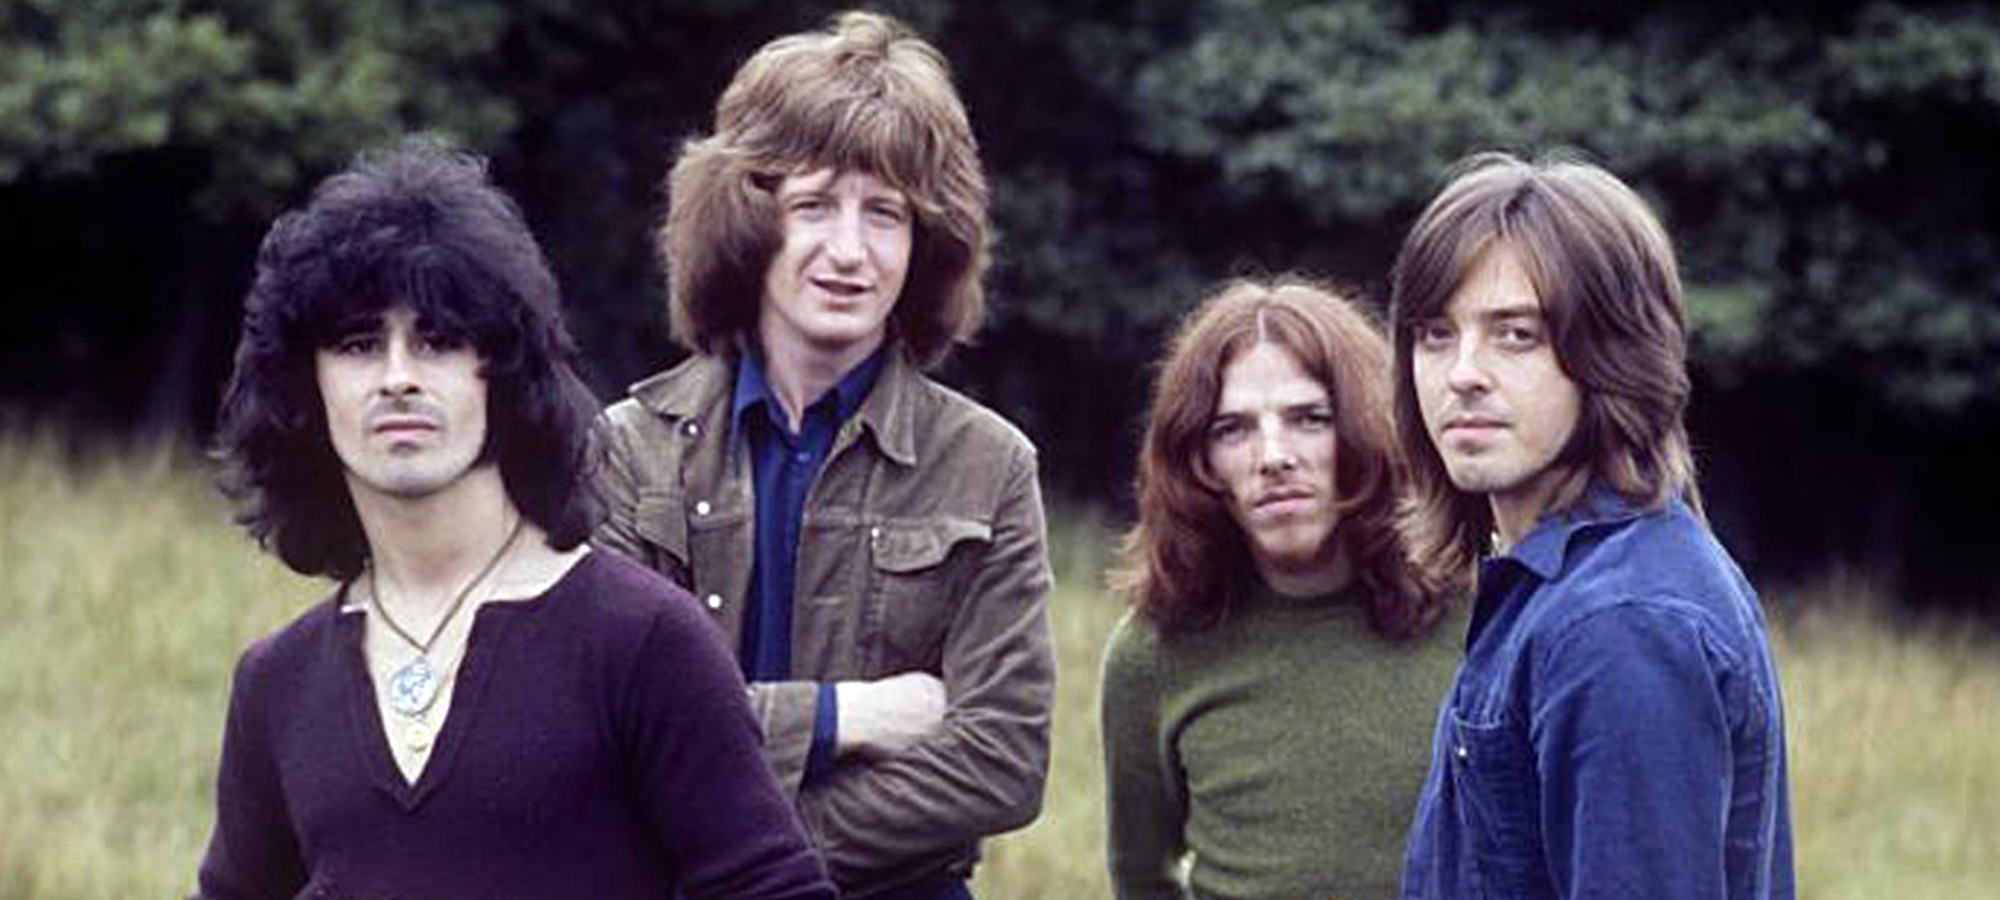 Badfinger photo from HipQuotient.com